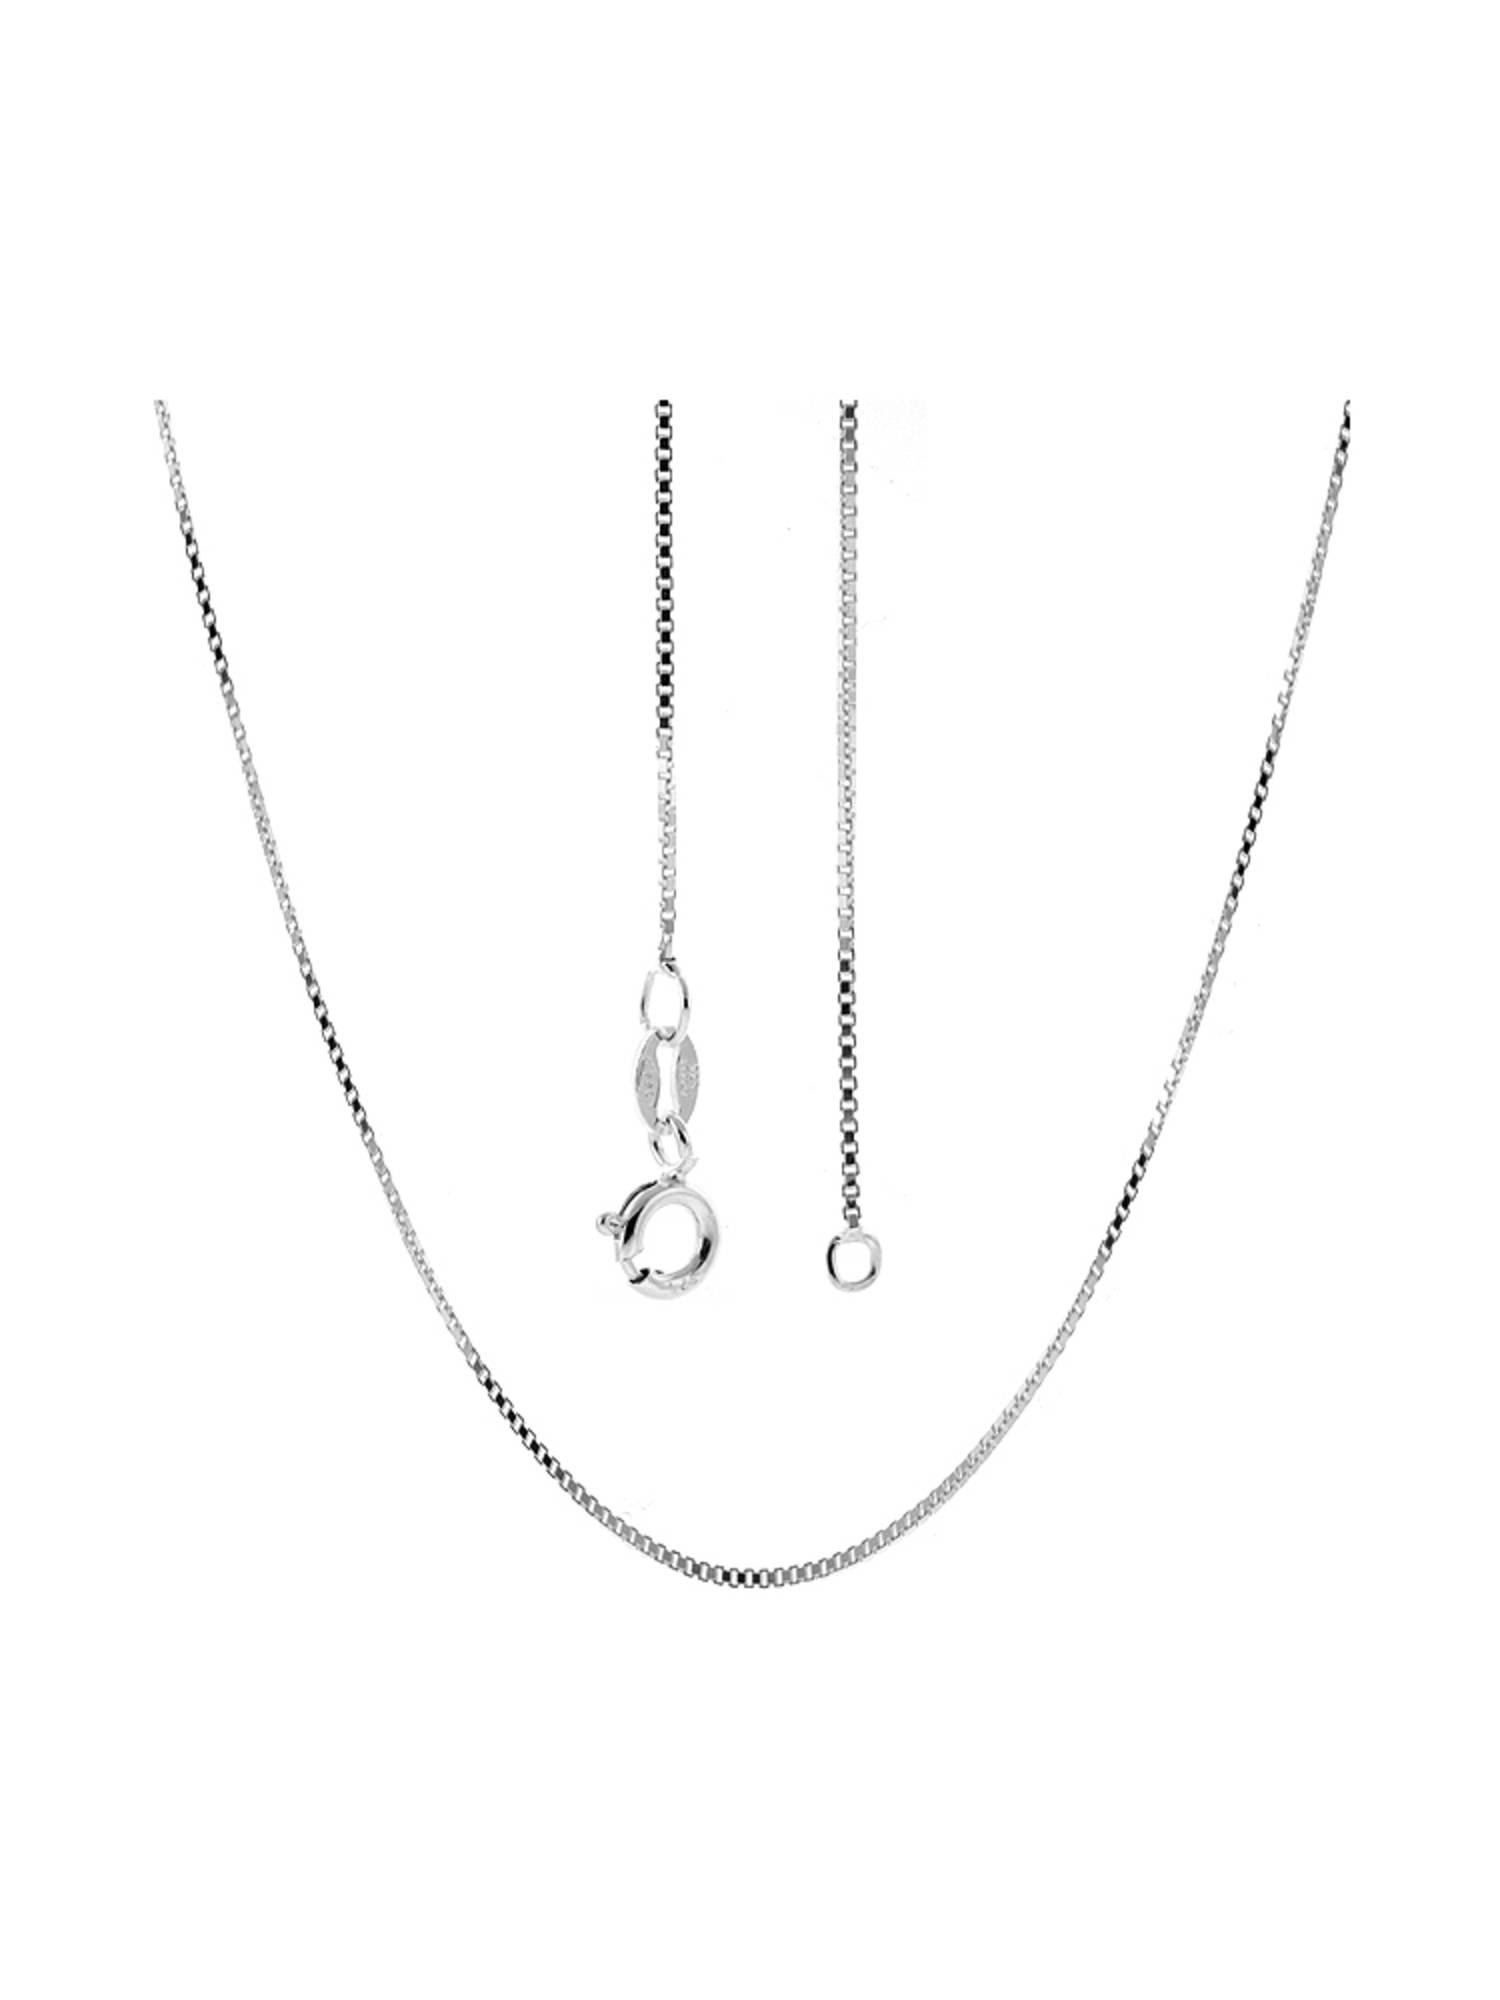 Jewelry Trends Sterling Silver 1mm X 22 Inches Italian Box Chain Necklace